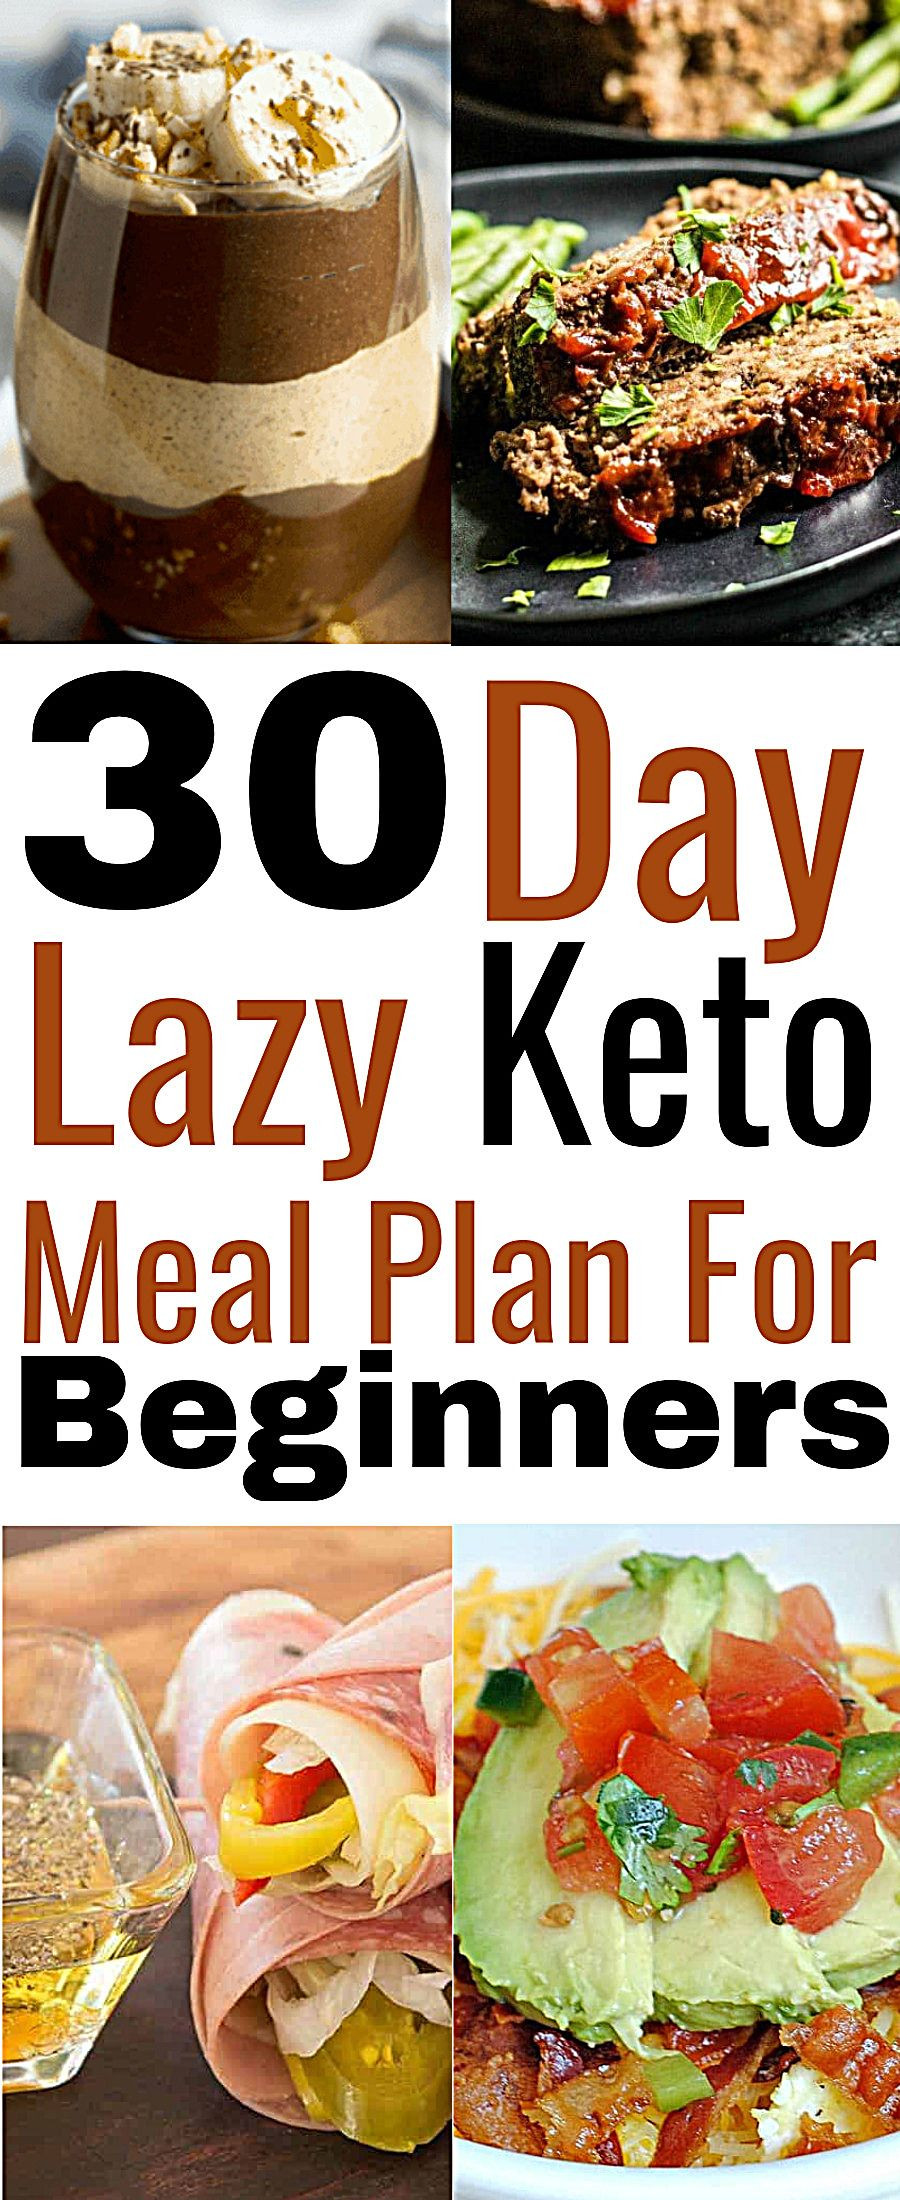 Lazy Keto Diet For Beginners  Lazy Keto Meal Plan 30 Day Keto Meal Plan With Recipes